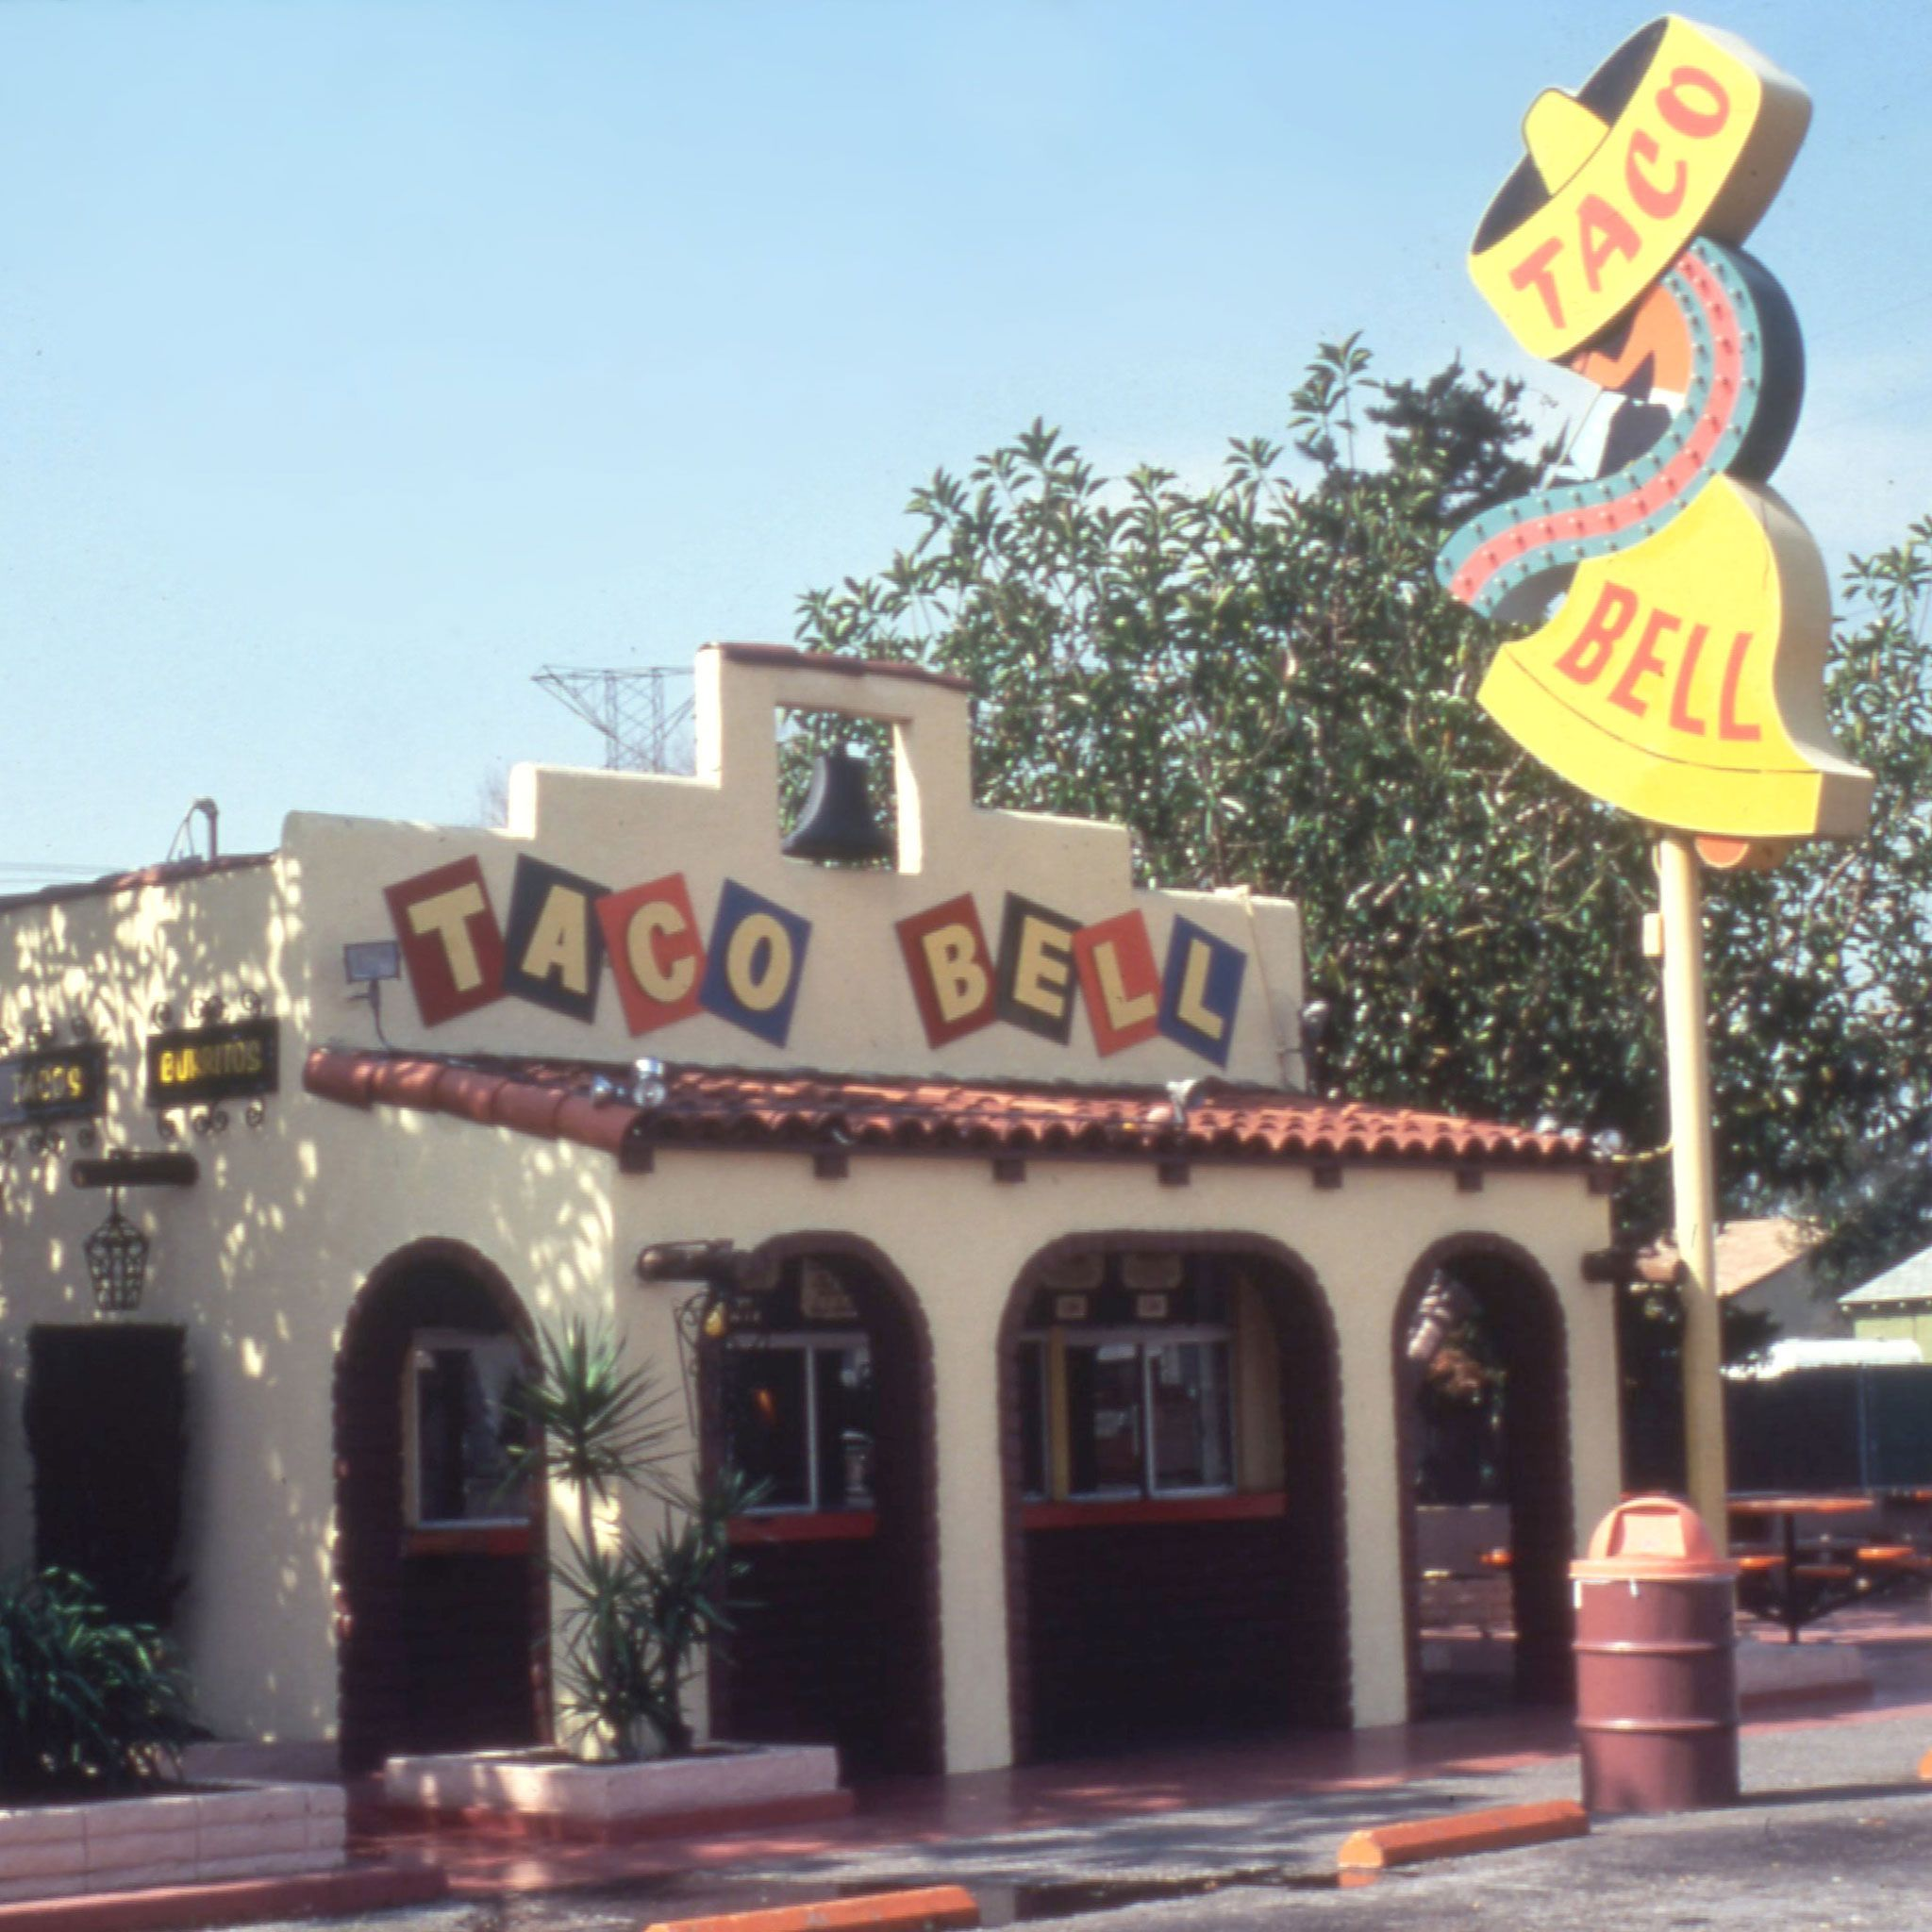 Plans Underway To Save The Original Taco Bell Location Fast Food